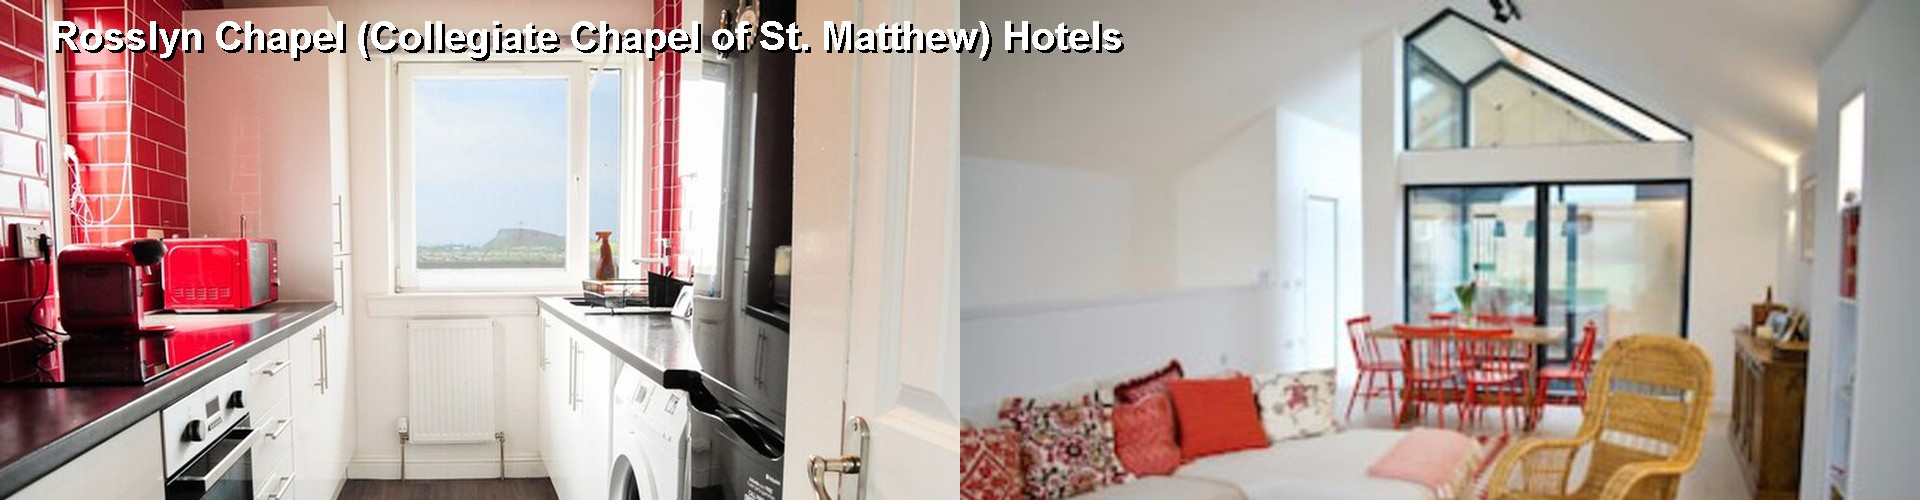 3 Best Hotels near Rosslyn Chapel (Collegiate Chapel of St. Matthew)